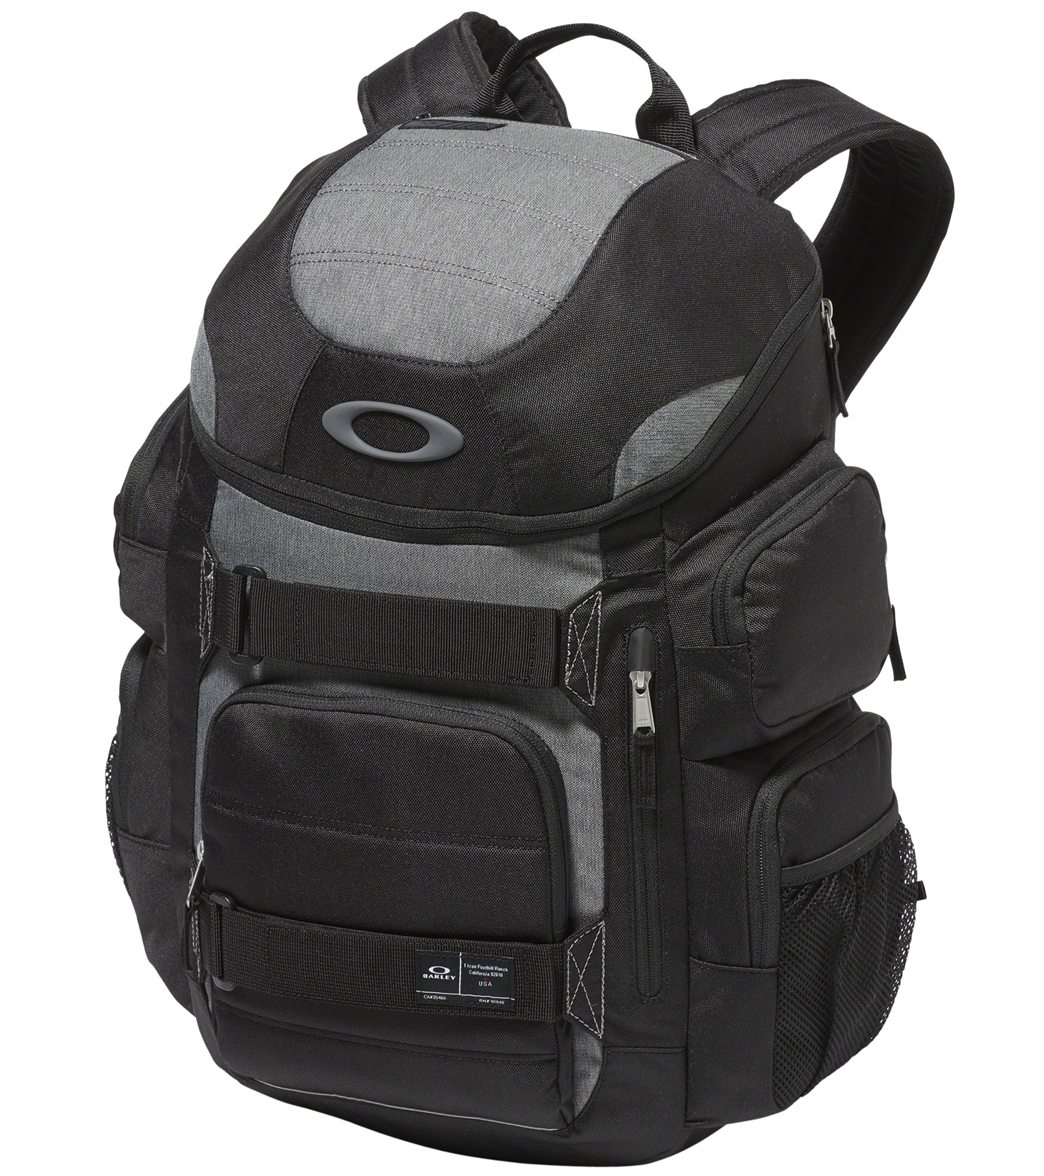 5c676a0fba Oakley Enduro 30L 2.0 Backpack at SwimOutlet.com - Free Shipping